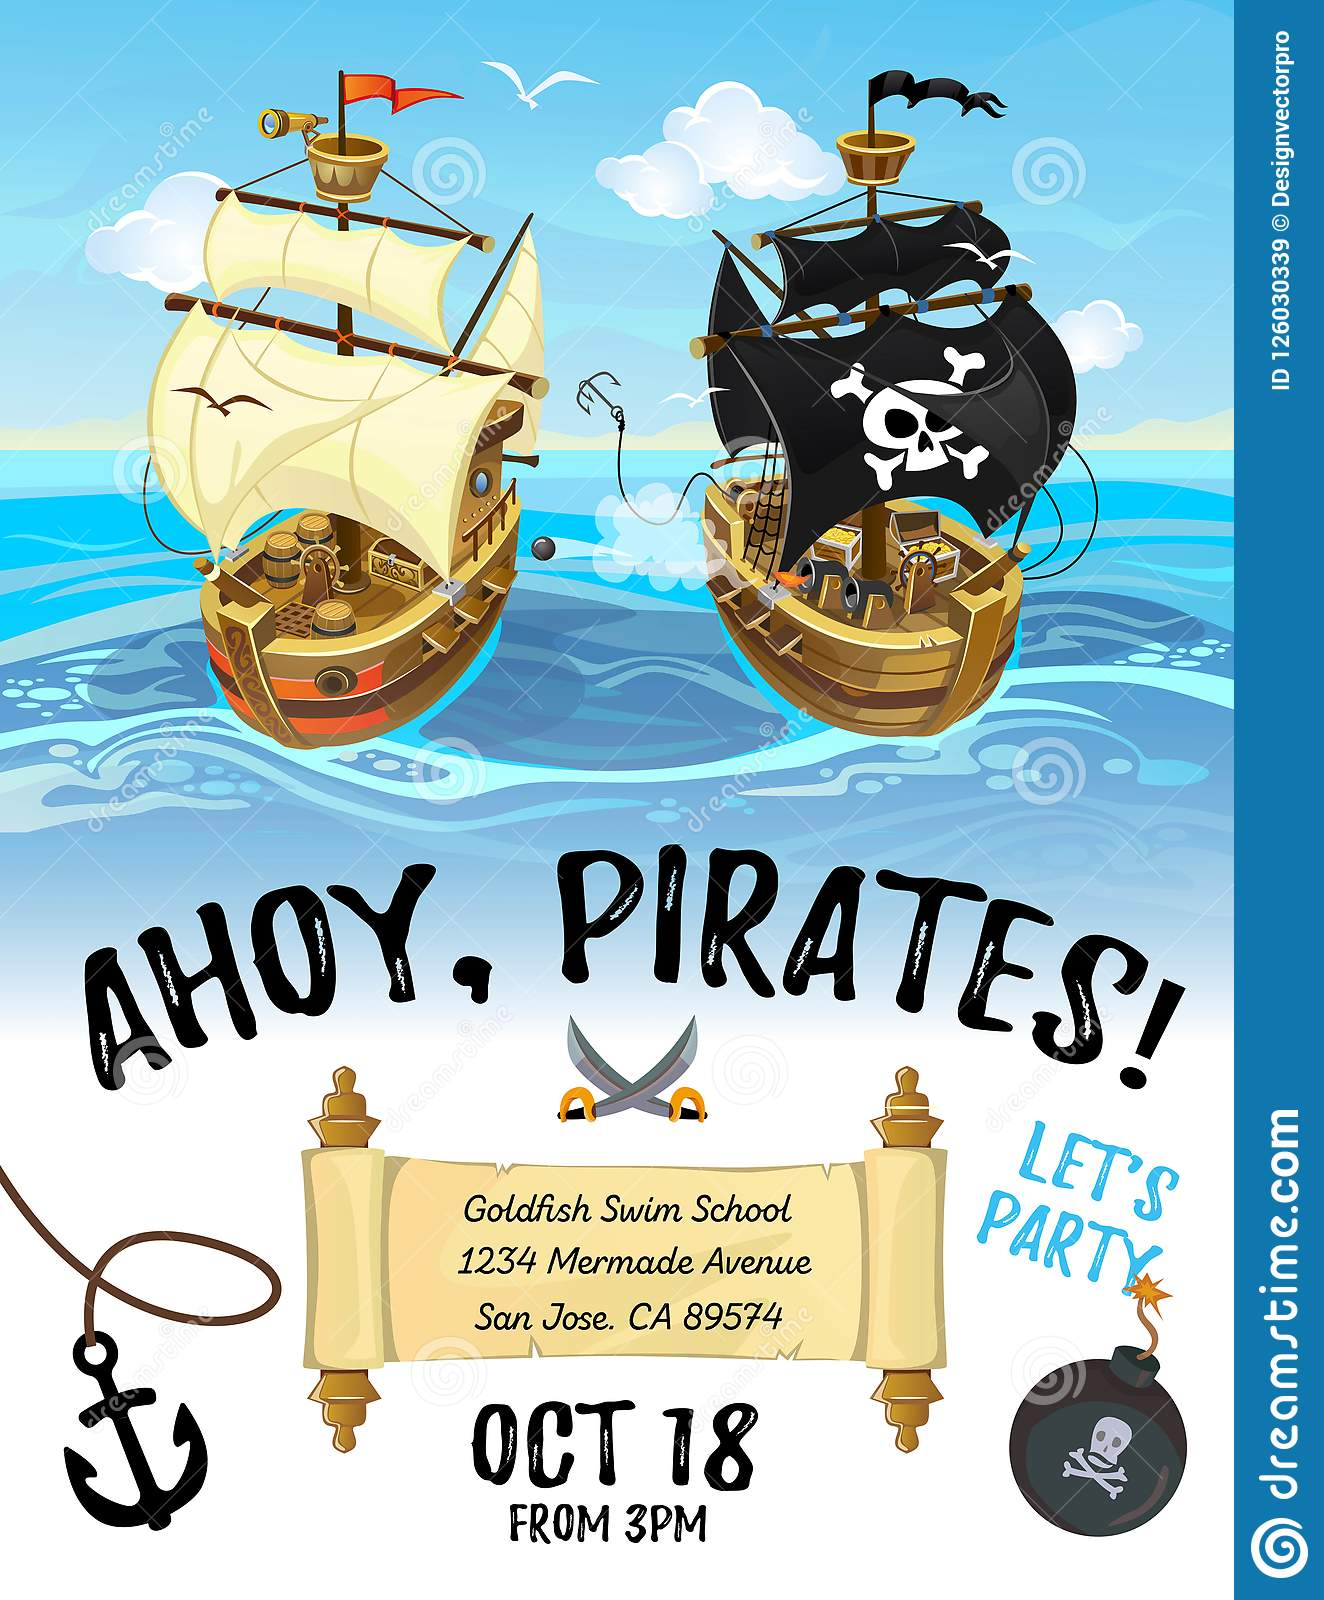 Pirate party cartoon invitation design with pirate ship and sea.